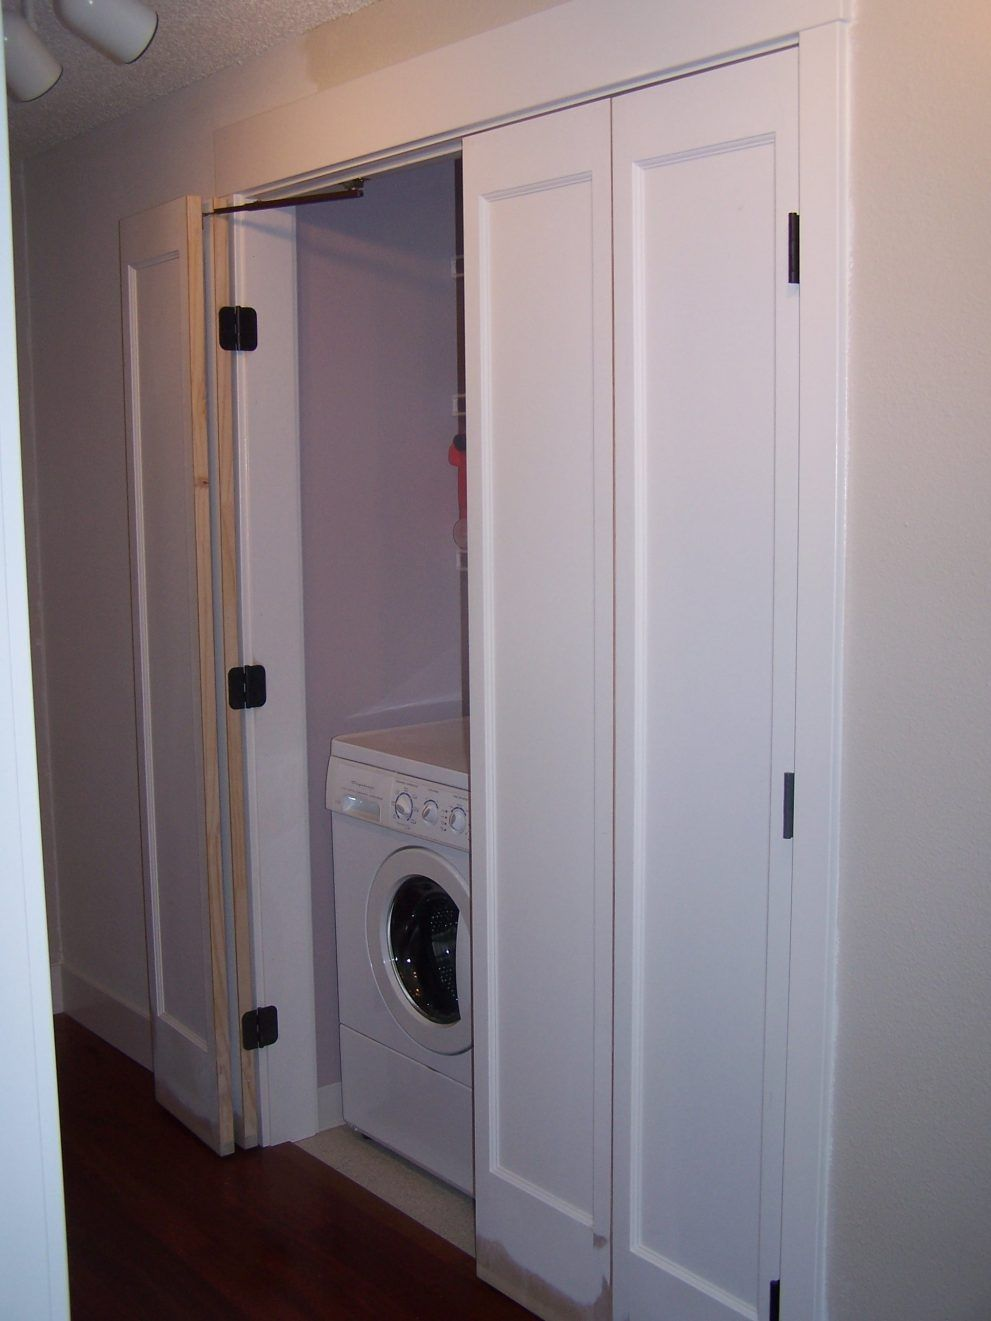 Pin By Jv On Home Folding Closet Doors Laundry Doors Bifold Closet Doors